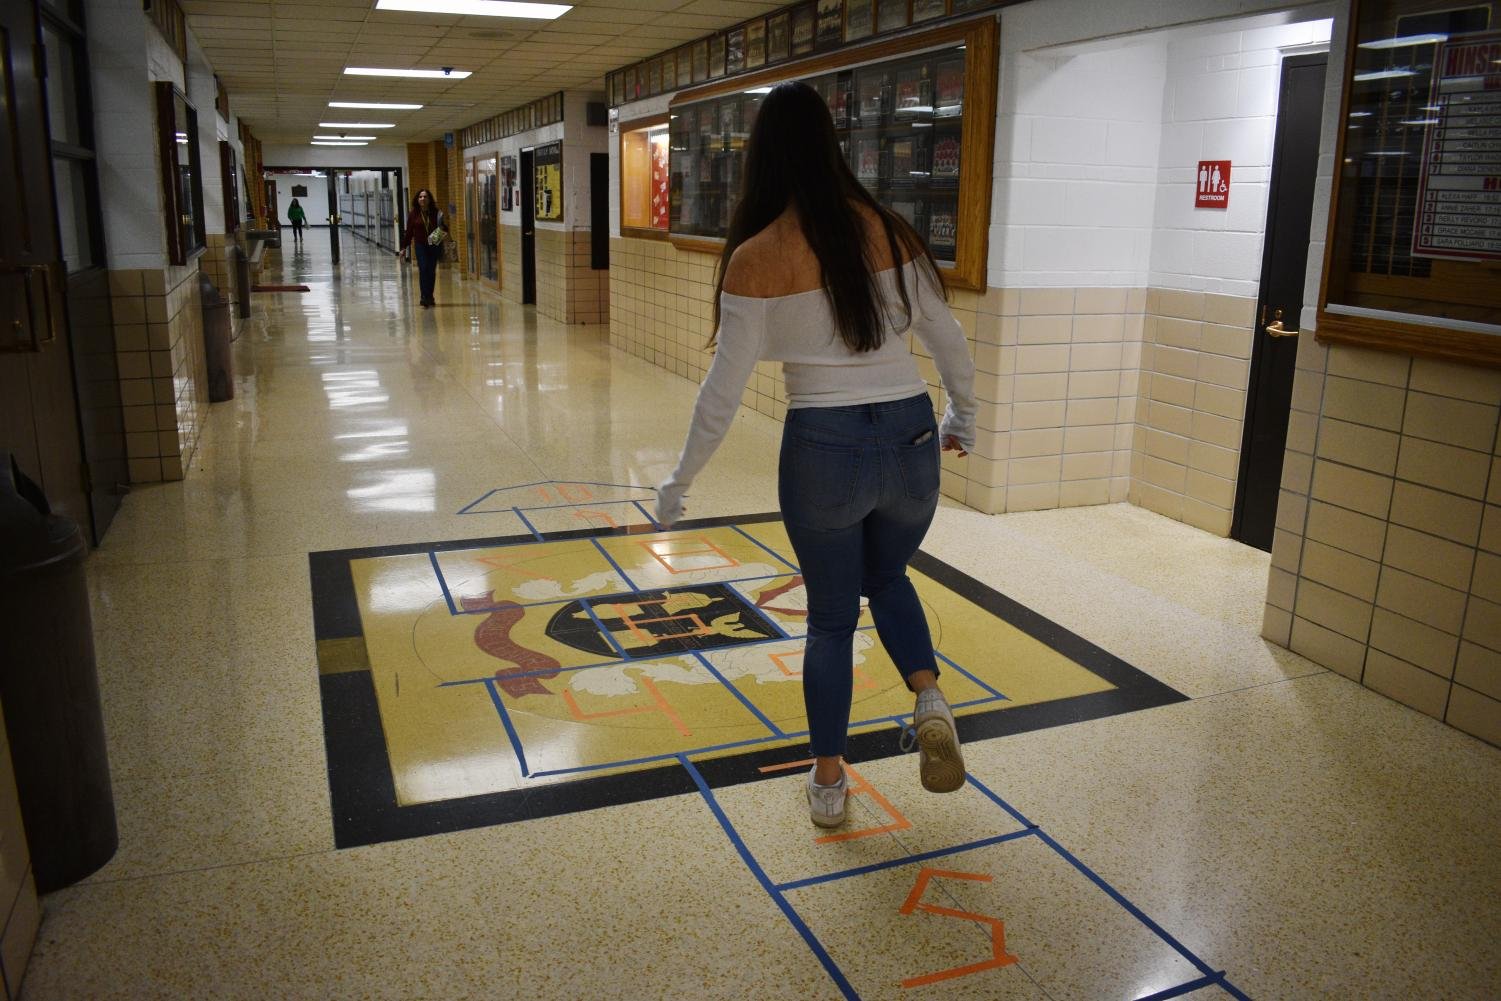 Along with the many activities being hosted around the school students can find hopscotch and board games taped to the floor.